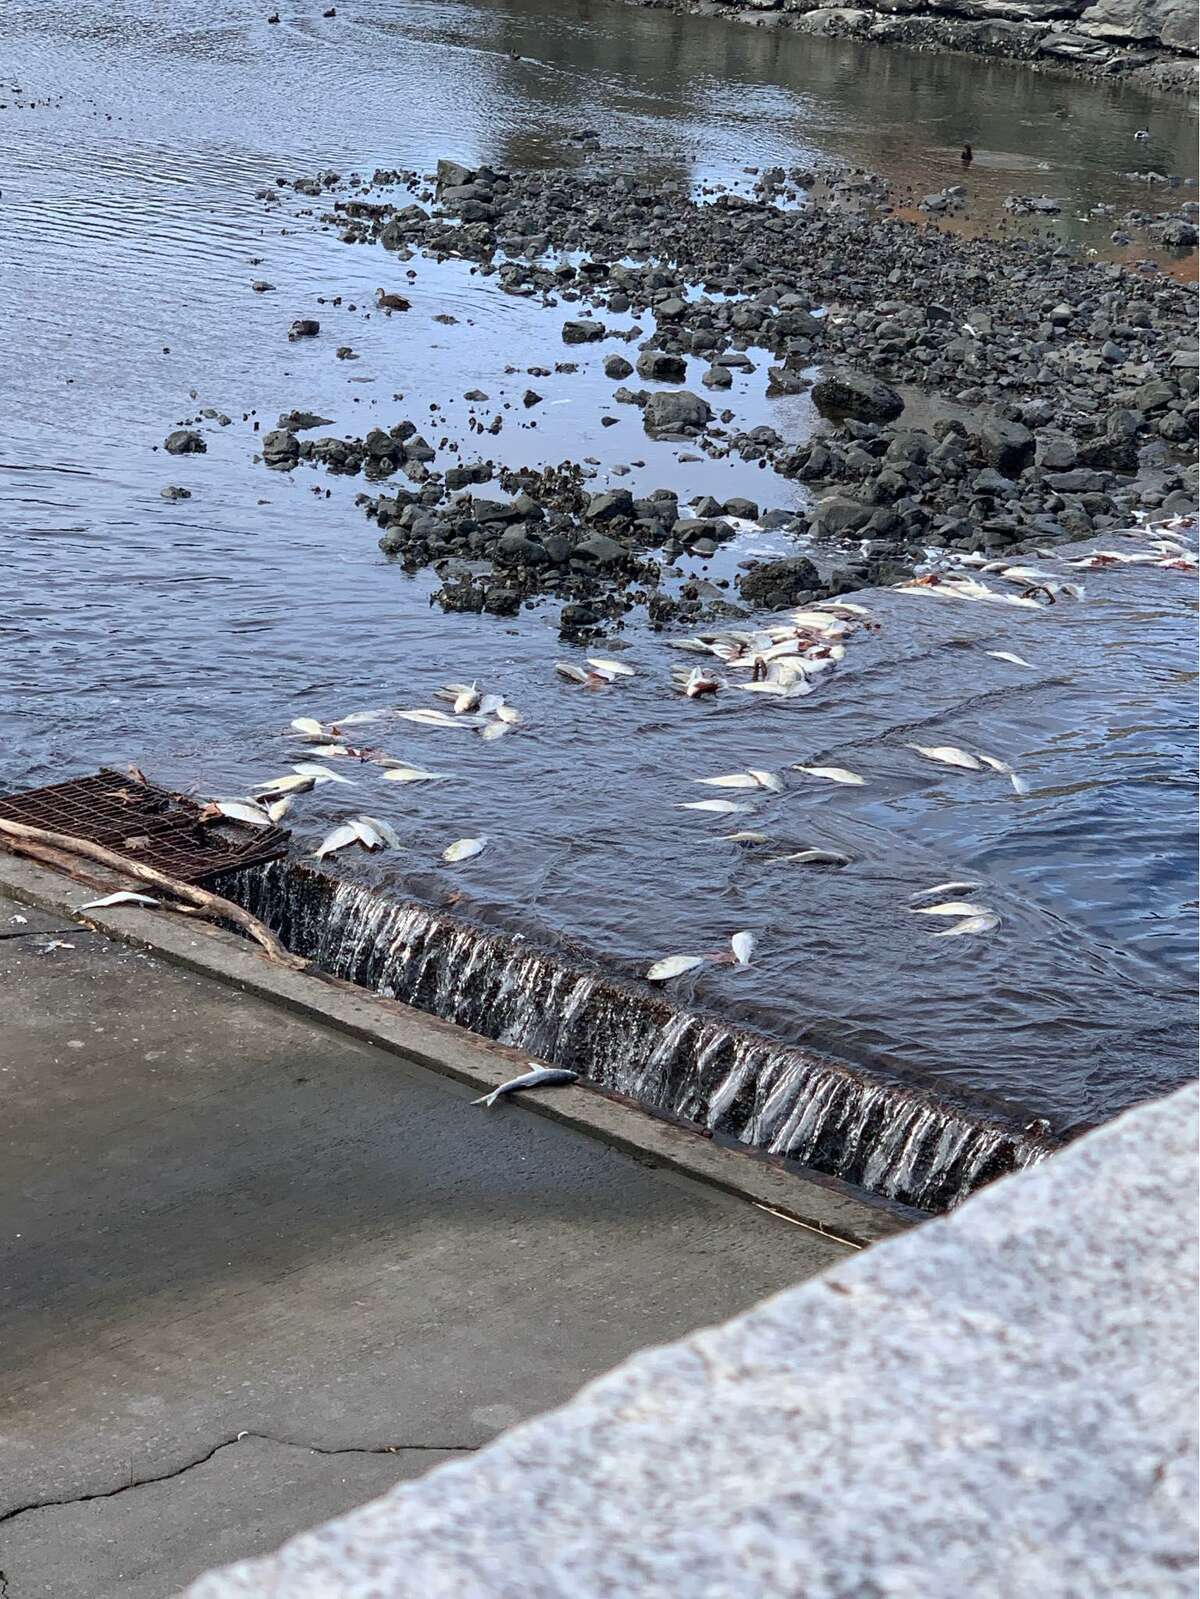 A Darien resident recently shared this photo of dead fish, which specialists identify as bunker, near the Ring's End Bridge.